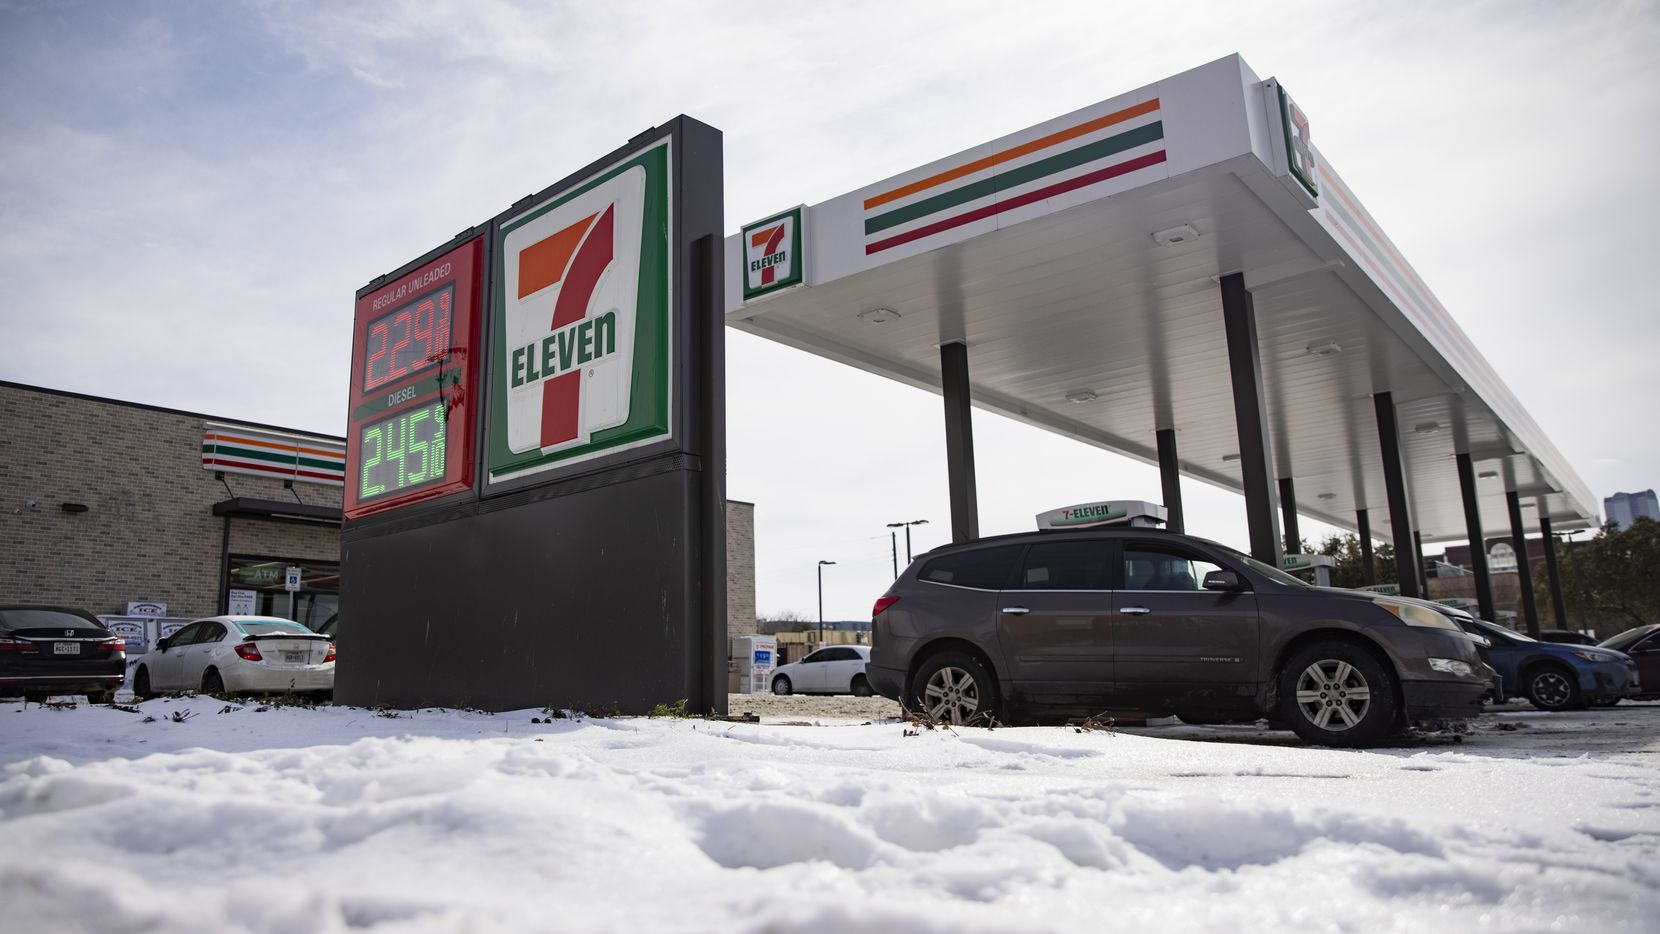 Dallasites fill up their tanks at the 7-Eleven on Live Oak St in Dallas on Thursday, Feb. 18, 2021.